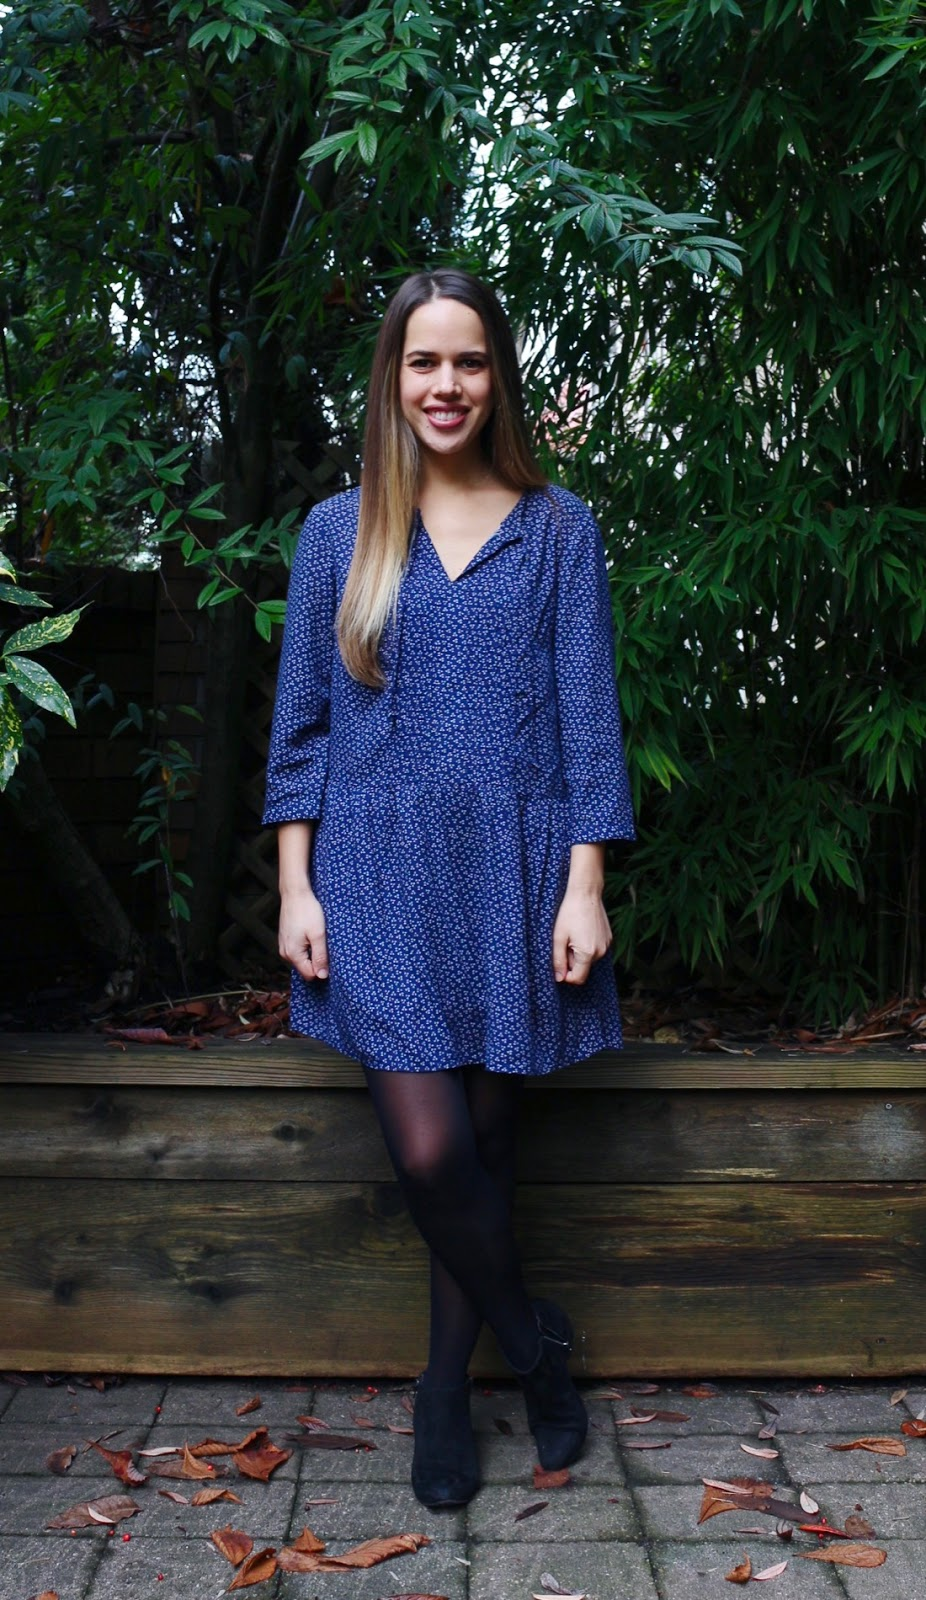 Jules in Flats - Old Navy Swing Dress + Ankle Booties (Business Casual Winter Workwear on a Budget)